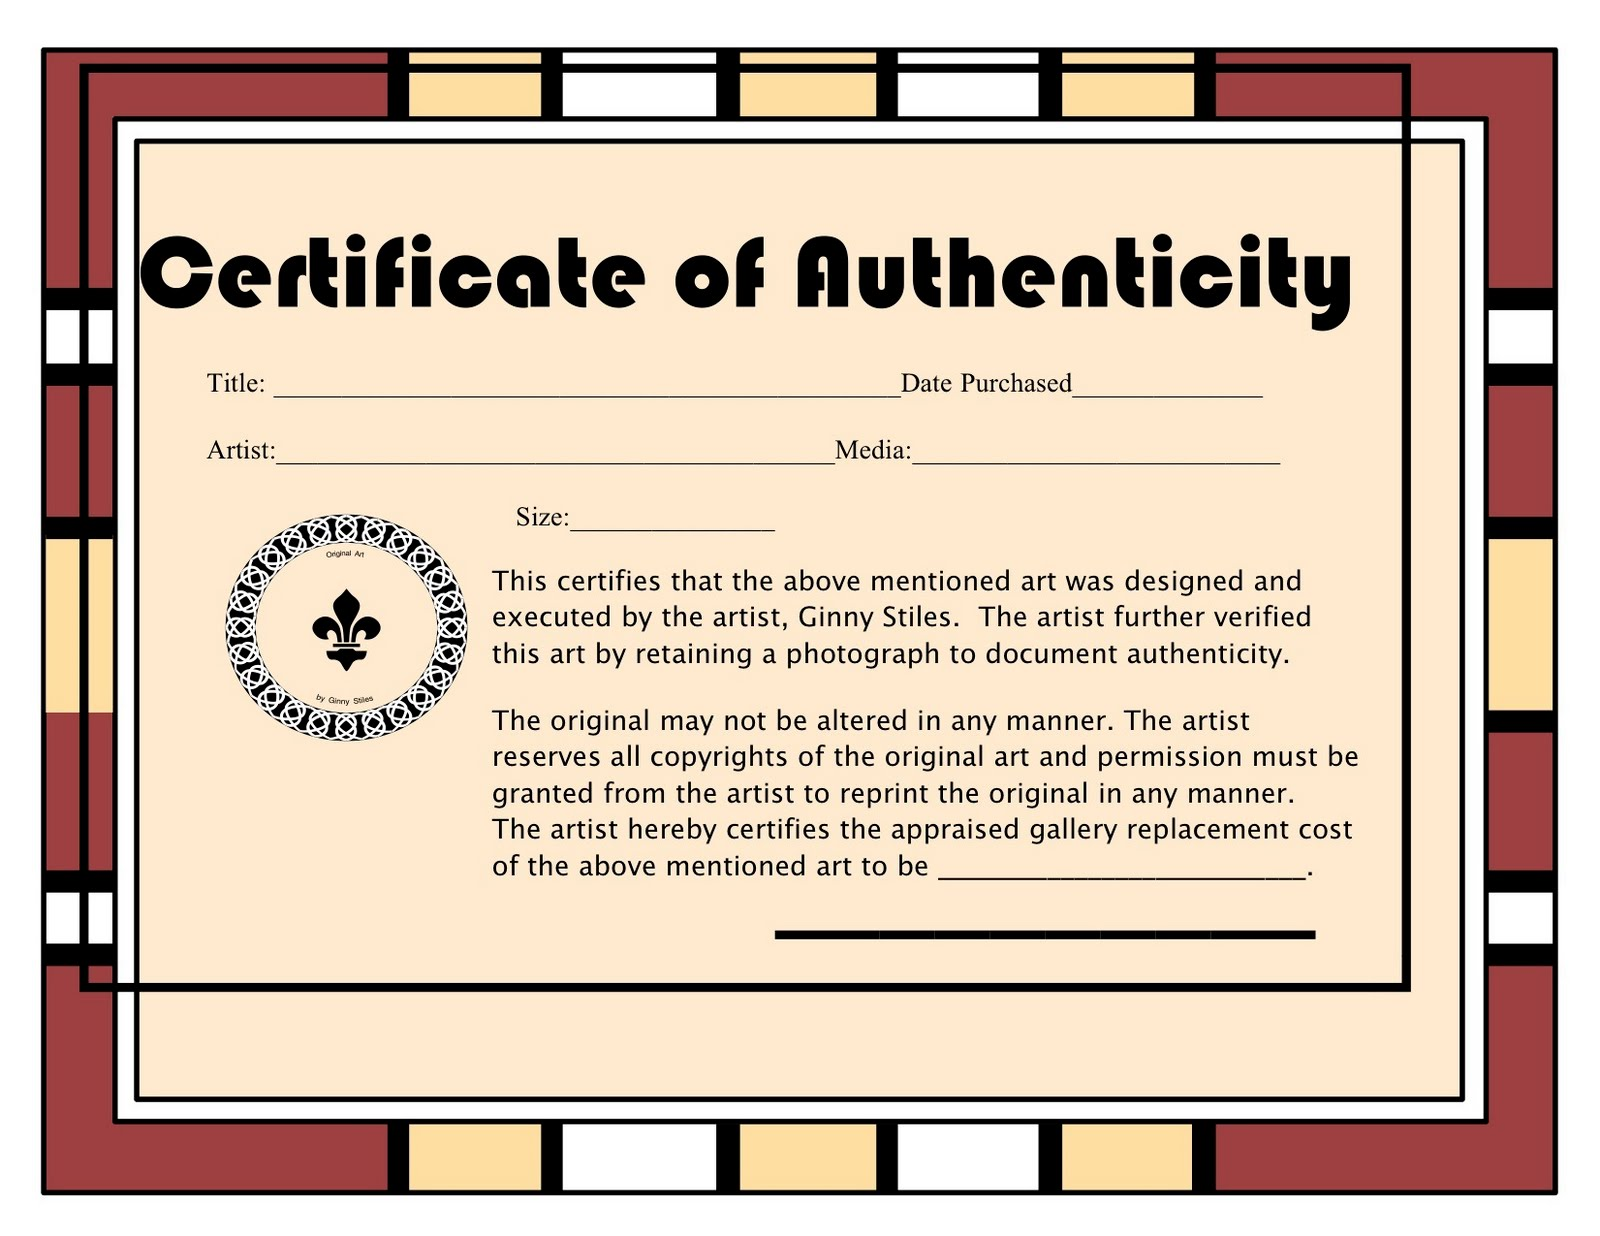 certificate of authenticity word template - an artist labyrinth ginny stiles czt certificate of